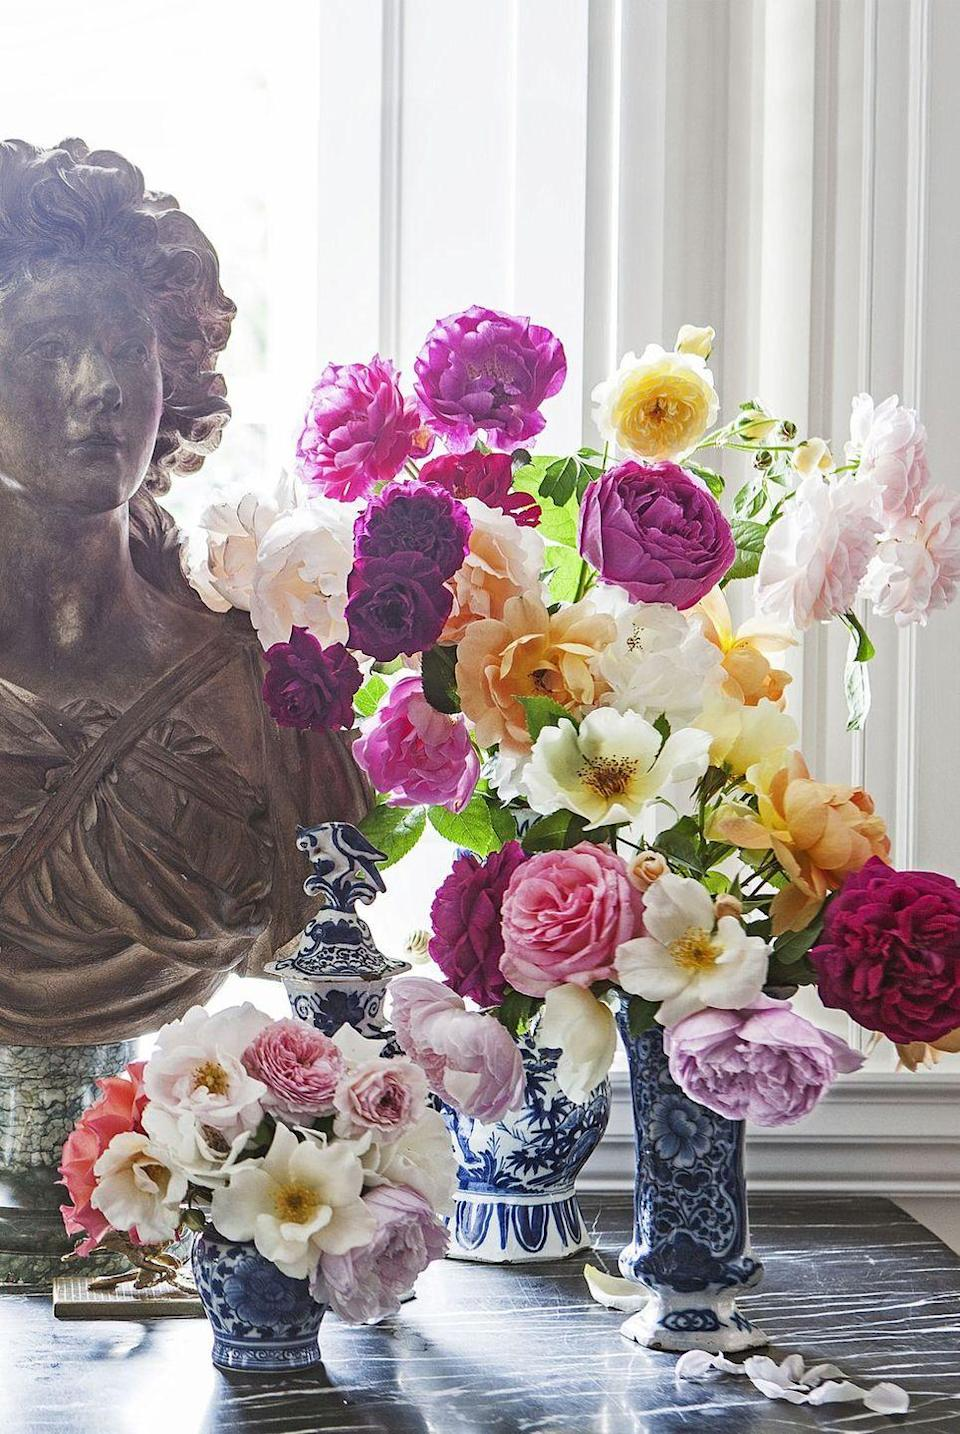 """<p>Groupings of nosegays can be more romantic than one big vase full. Designer and gardener <a href=""""https://www.housebeautiful.com/entertaining/flower-arrangements/tips/g3378/carolyne-roehm-flower-arranging-tips/"""" rel=""""nofollow noopener"""" target=""""_blank"""" data-ylk=""""slk:Carolyne Roehm"""" class=""""link rapid-noclick-resp"""">Carolyne Roehm</a> recommends arranging them naturally, like the blooms just came from the garden.</p><p><strong><em>Frontgate Blue Ming Vase Collection, $59</em></strong> <a class=""""link rapid-noclick-resp"""" href=""""https://go.redirectingat.com?id=74968X1596630&url=https%3A%2F%2Fwww.frontgate.com%2Fblue-ming-small-ceramic-collection%2F749307&sref=https%3A%2F%2Fwww.housebeautiful.com%2Fentertaining%2Fflower-arrangements%2Fg19409803%2Feaster-flower-arrangements%2F"""" rel=""""nofollow noopener"""" target=""""_blank"""" data-ylk=""""slk:BUY NOW"""">BUY NOW</a></p>"""